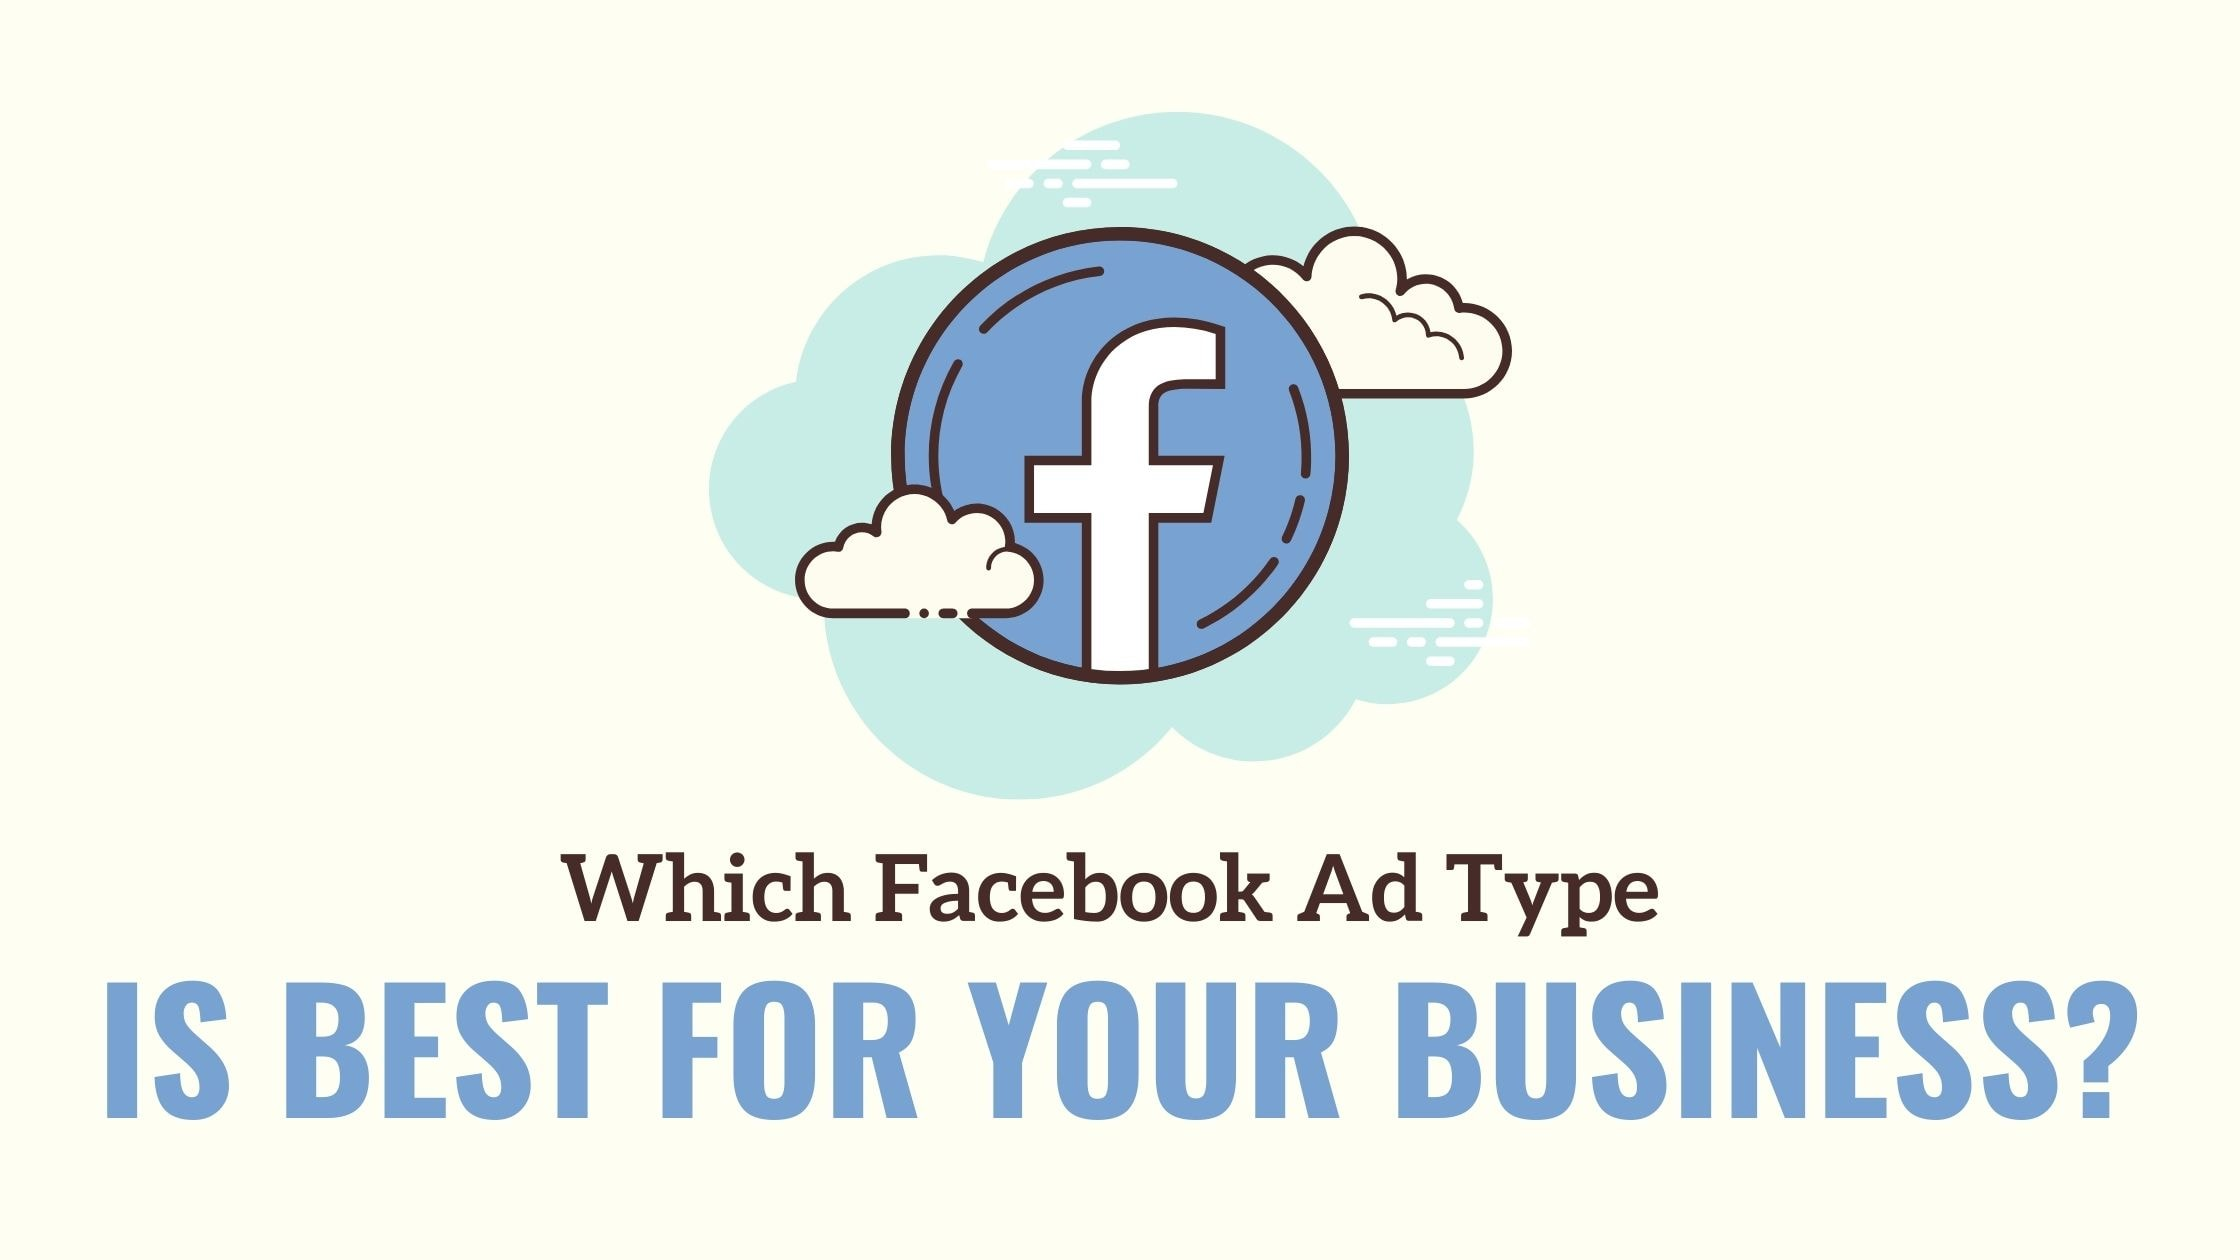 Which Facebook Ad Type is Best for Your Business